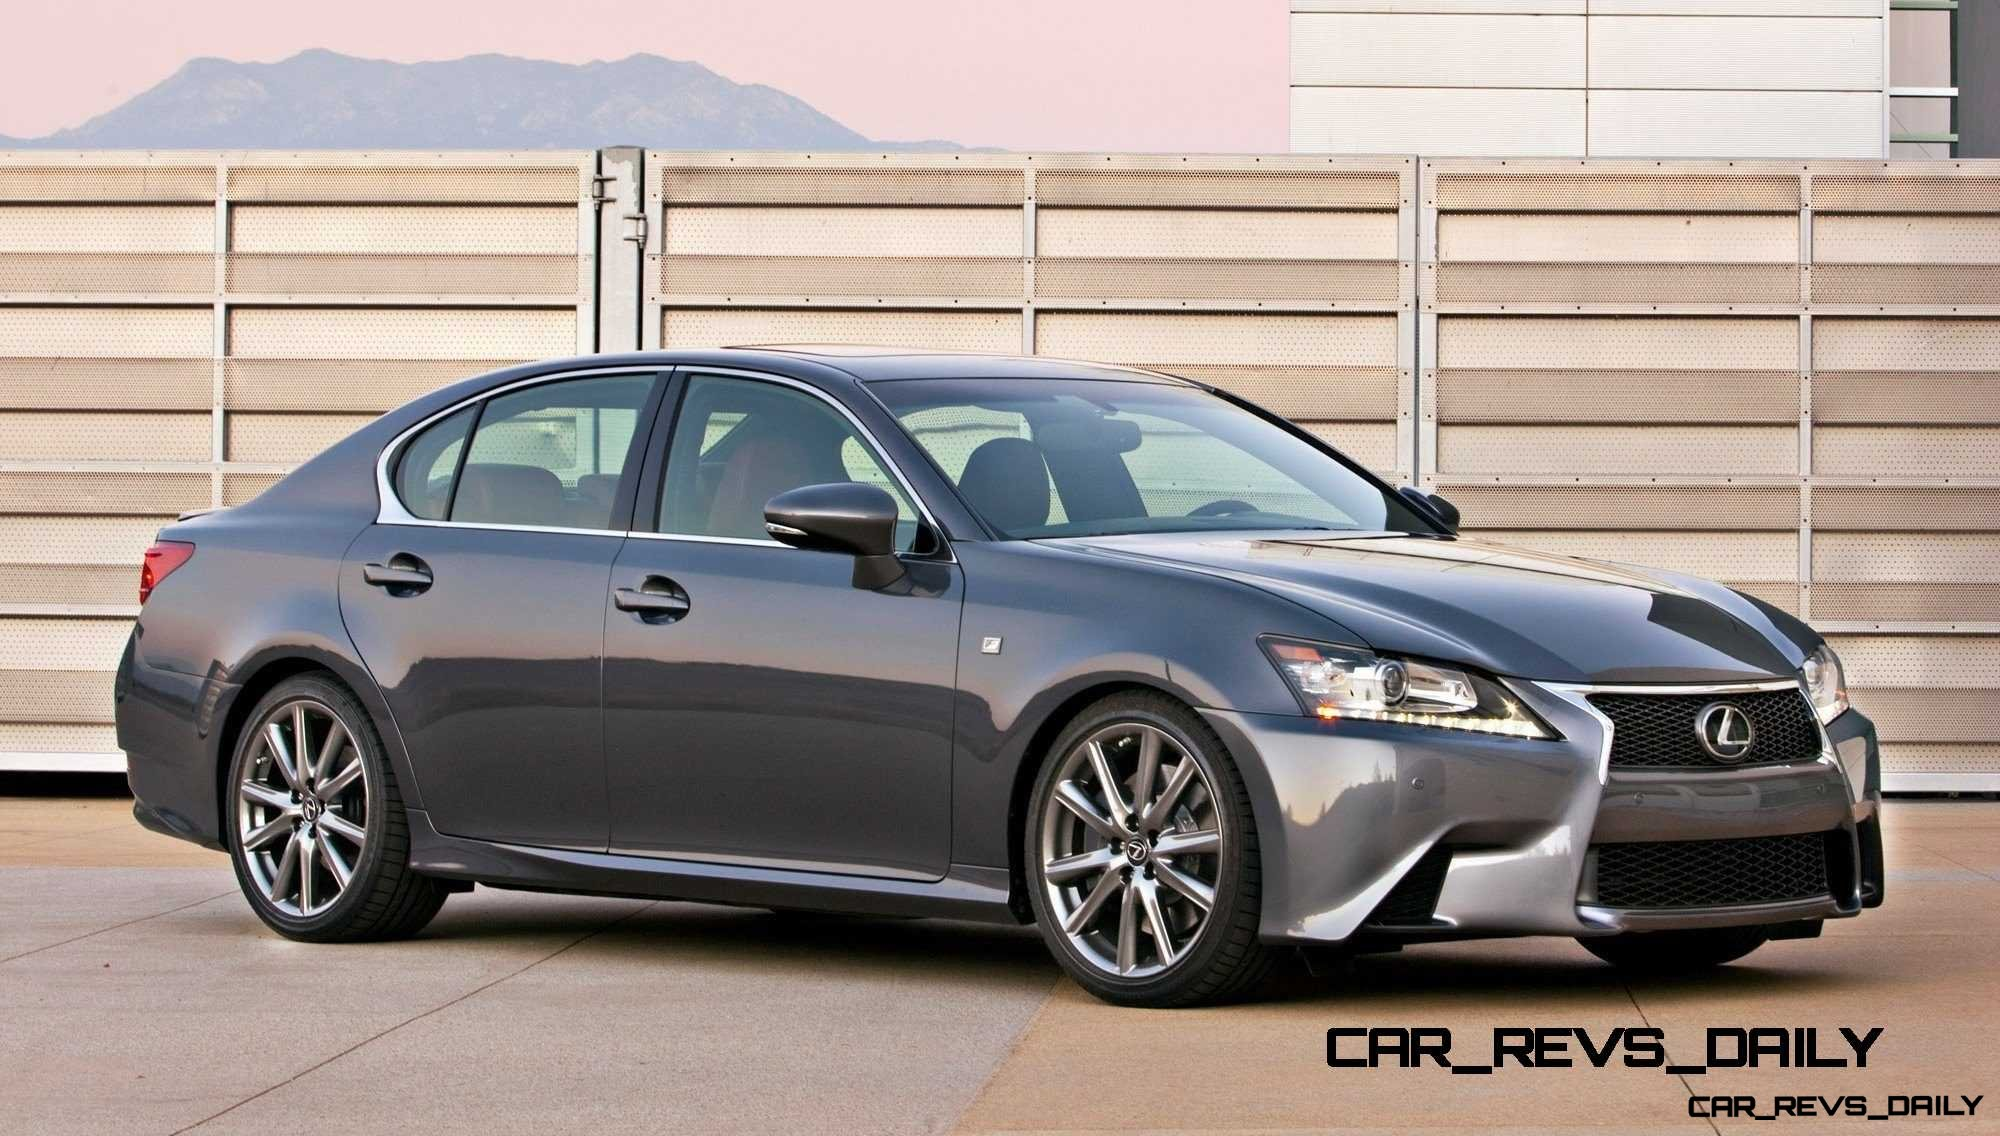 2014 lexus gs350 and gs f sport buyers guide info 21. Black Bedroom Furniture Sets. Home Design Ideas